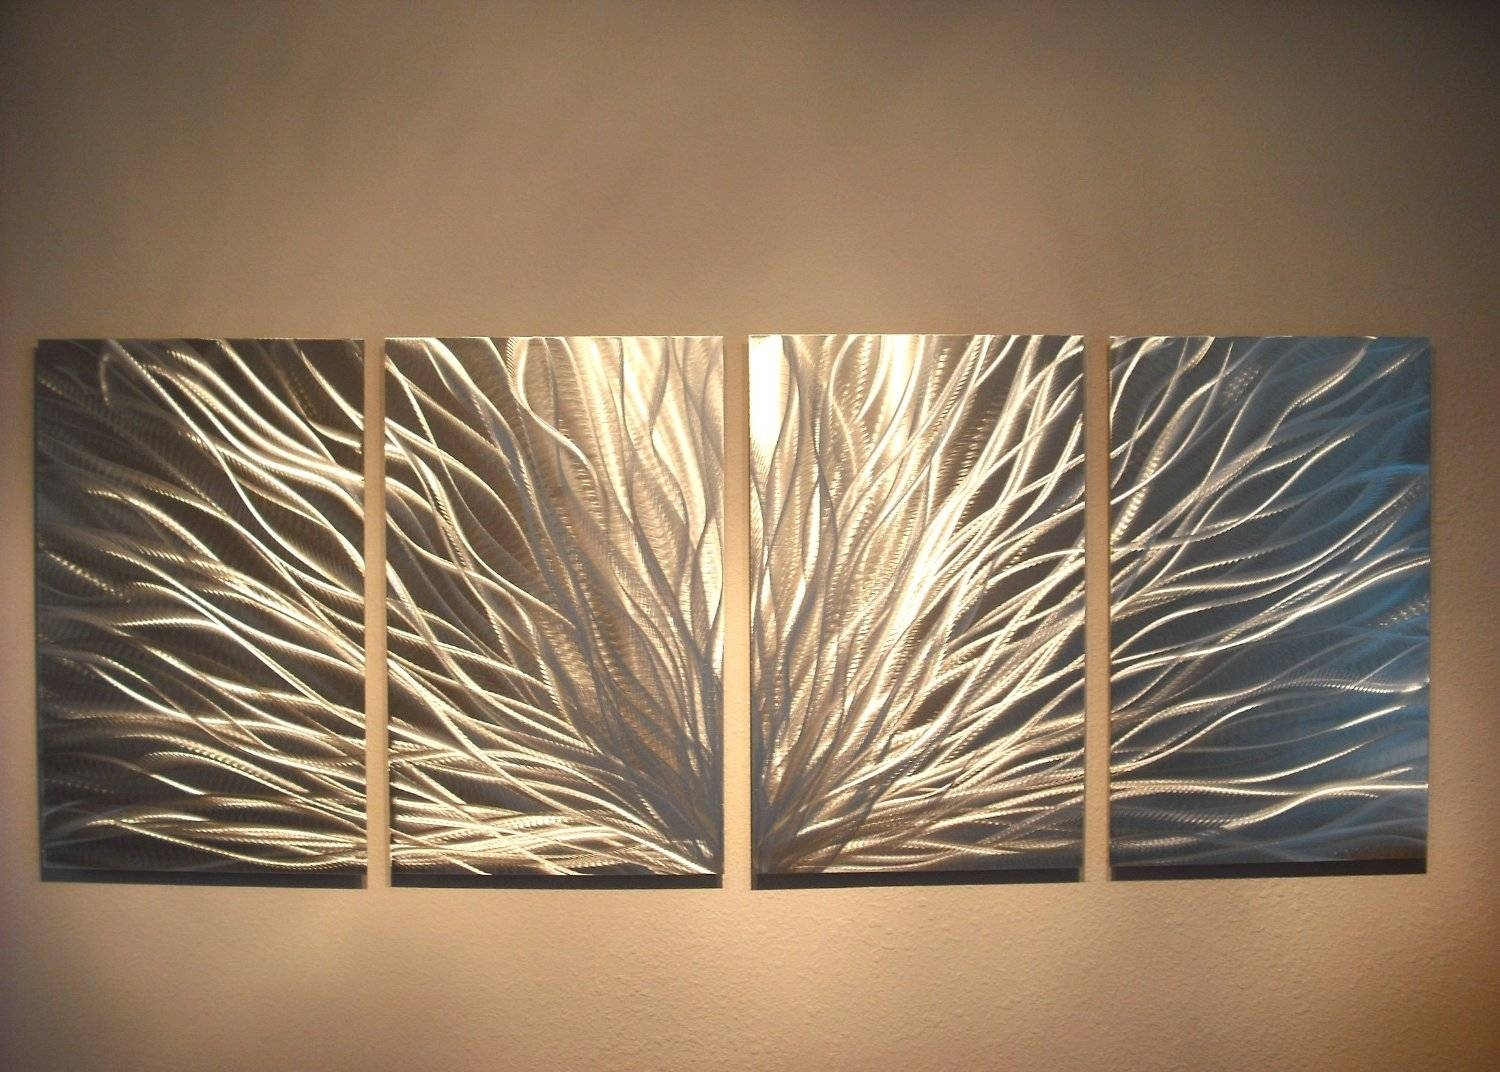 Wall Art Designs: Modern Abstract Wall Art Brown Cheap Pertaining To Newest Cheap Abstract Metal Wall Art (View 2 of 20)